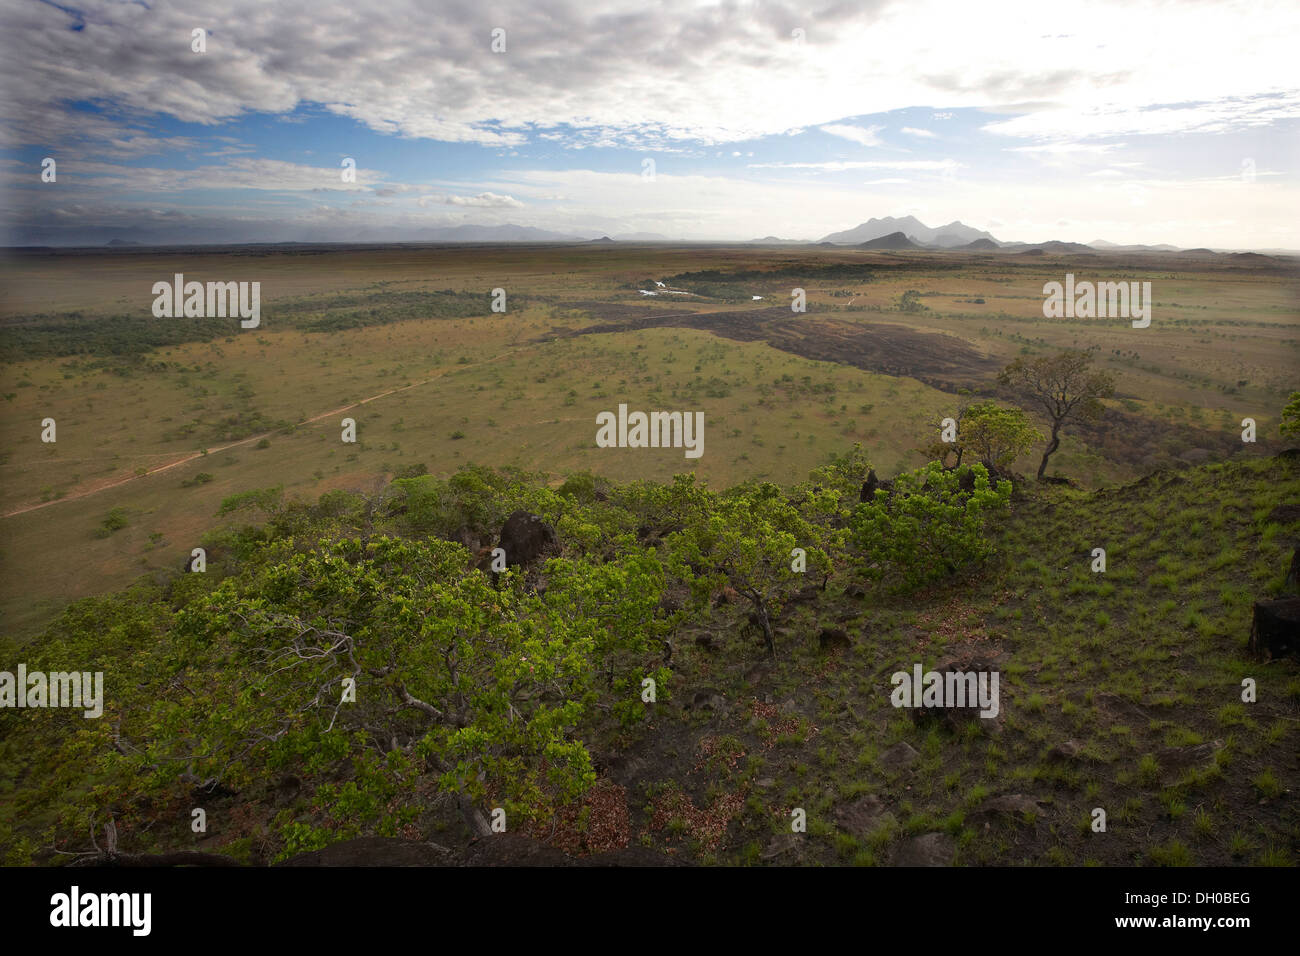 Savannah landscape, Guyana, South America. - Stock Image